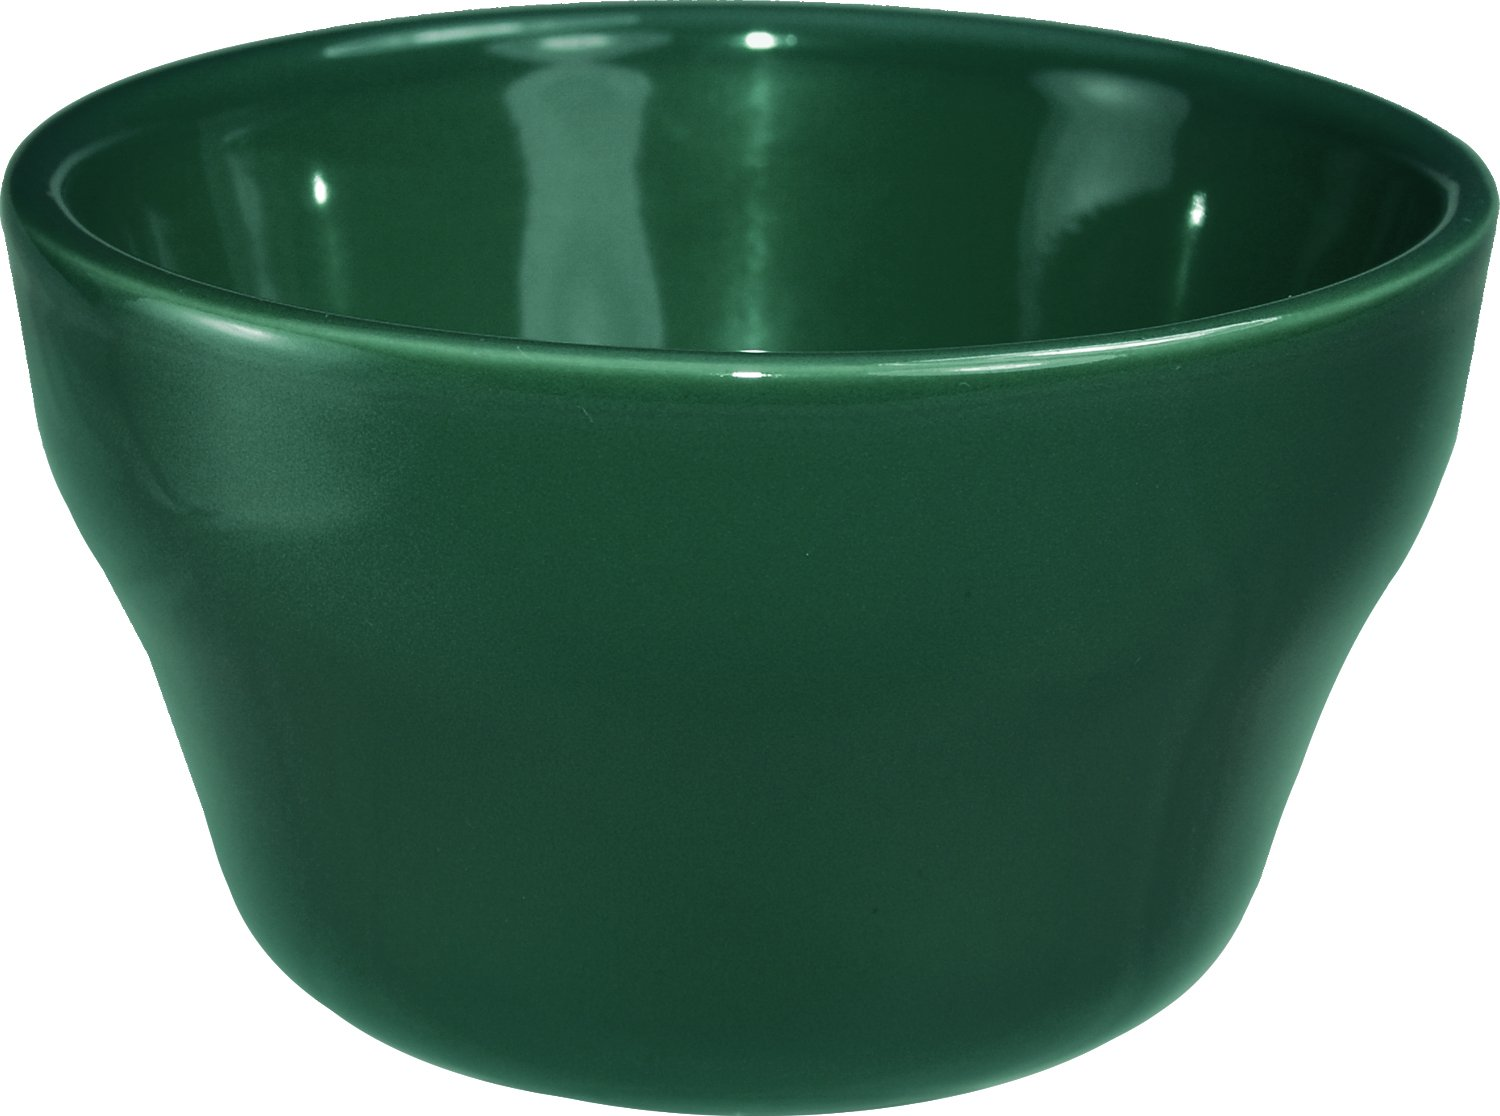 ITI CA-4-G 7-1/4-Ounce 36-Piece Cancun Bouillon Cups, Green International Tableware Inc.